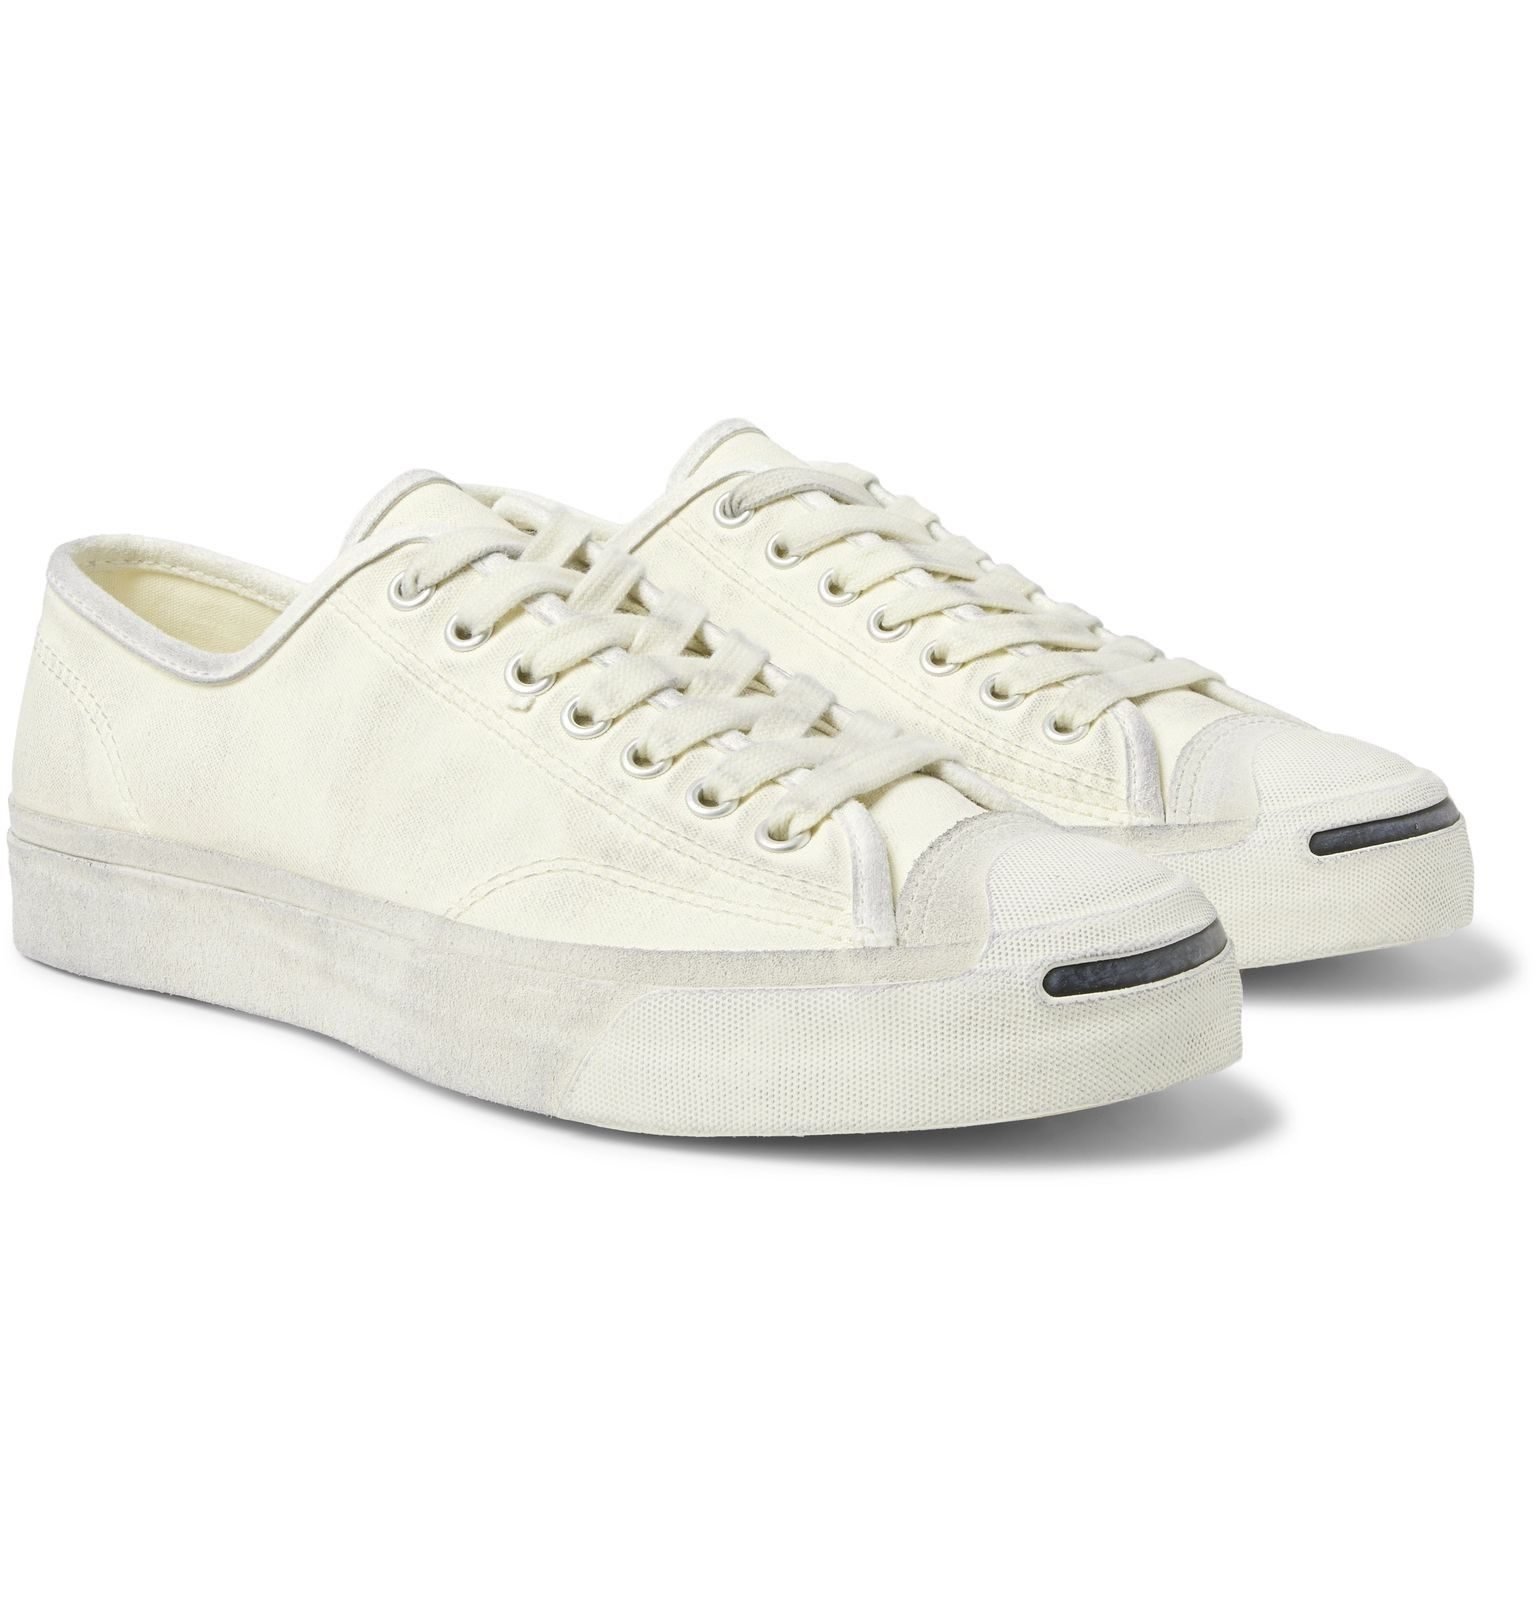 Off-white Jack Purcell OX Distressed